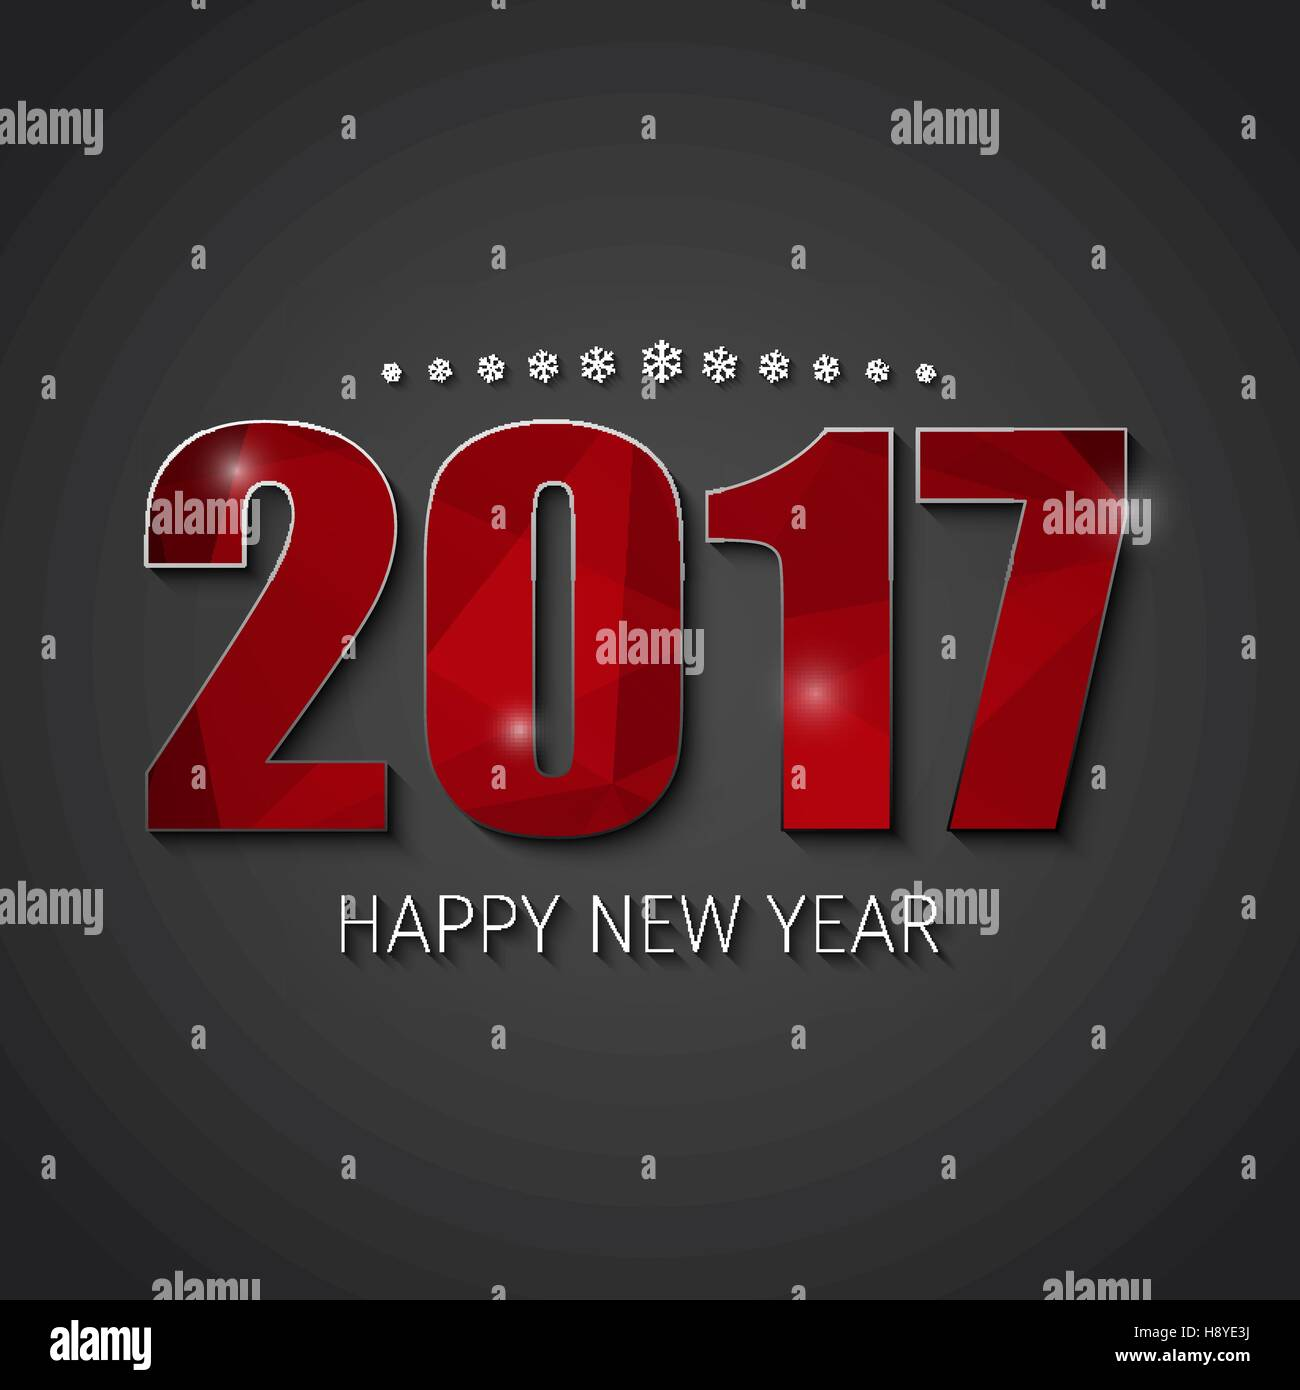 The design of the square black banner for a Happy New Year  Template     The design of the square black banner for a Happy New Year  Template  background with red abstract polygonal numbers 2017  Vector illustration